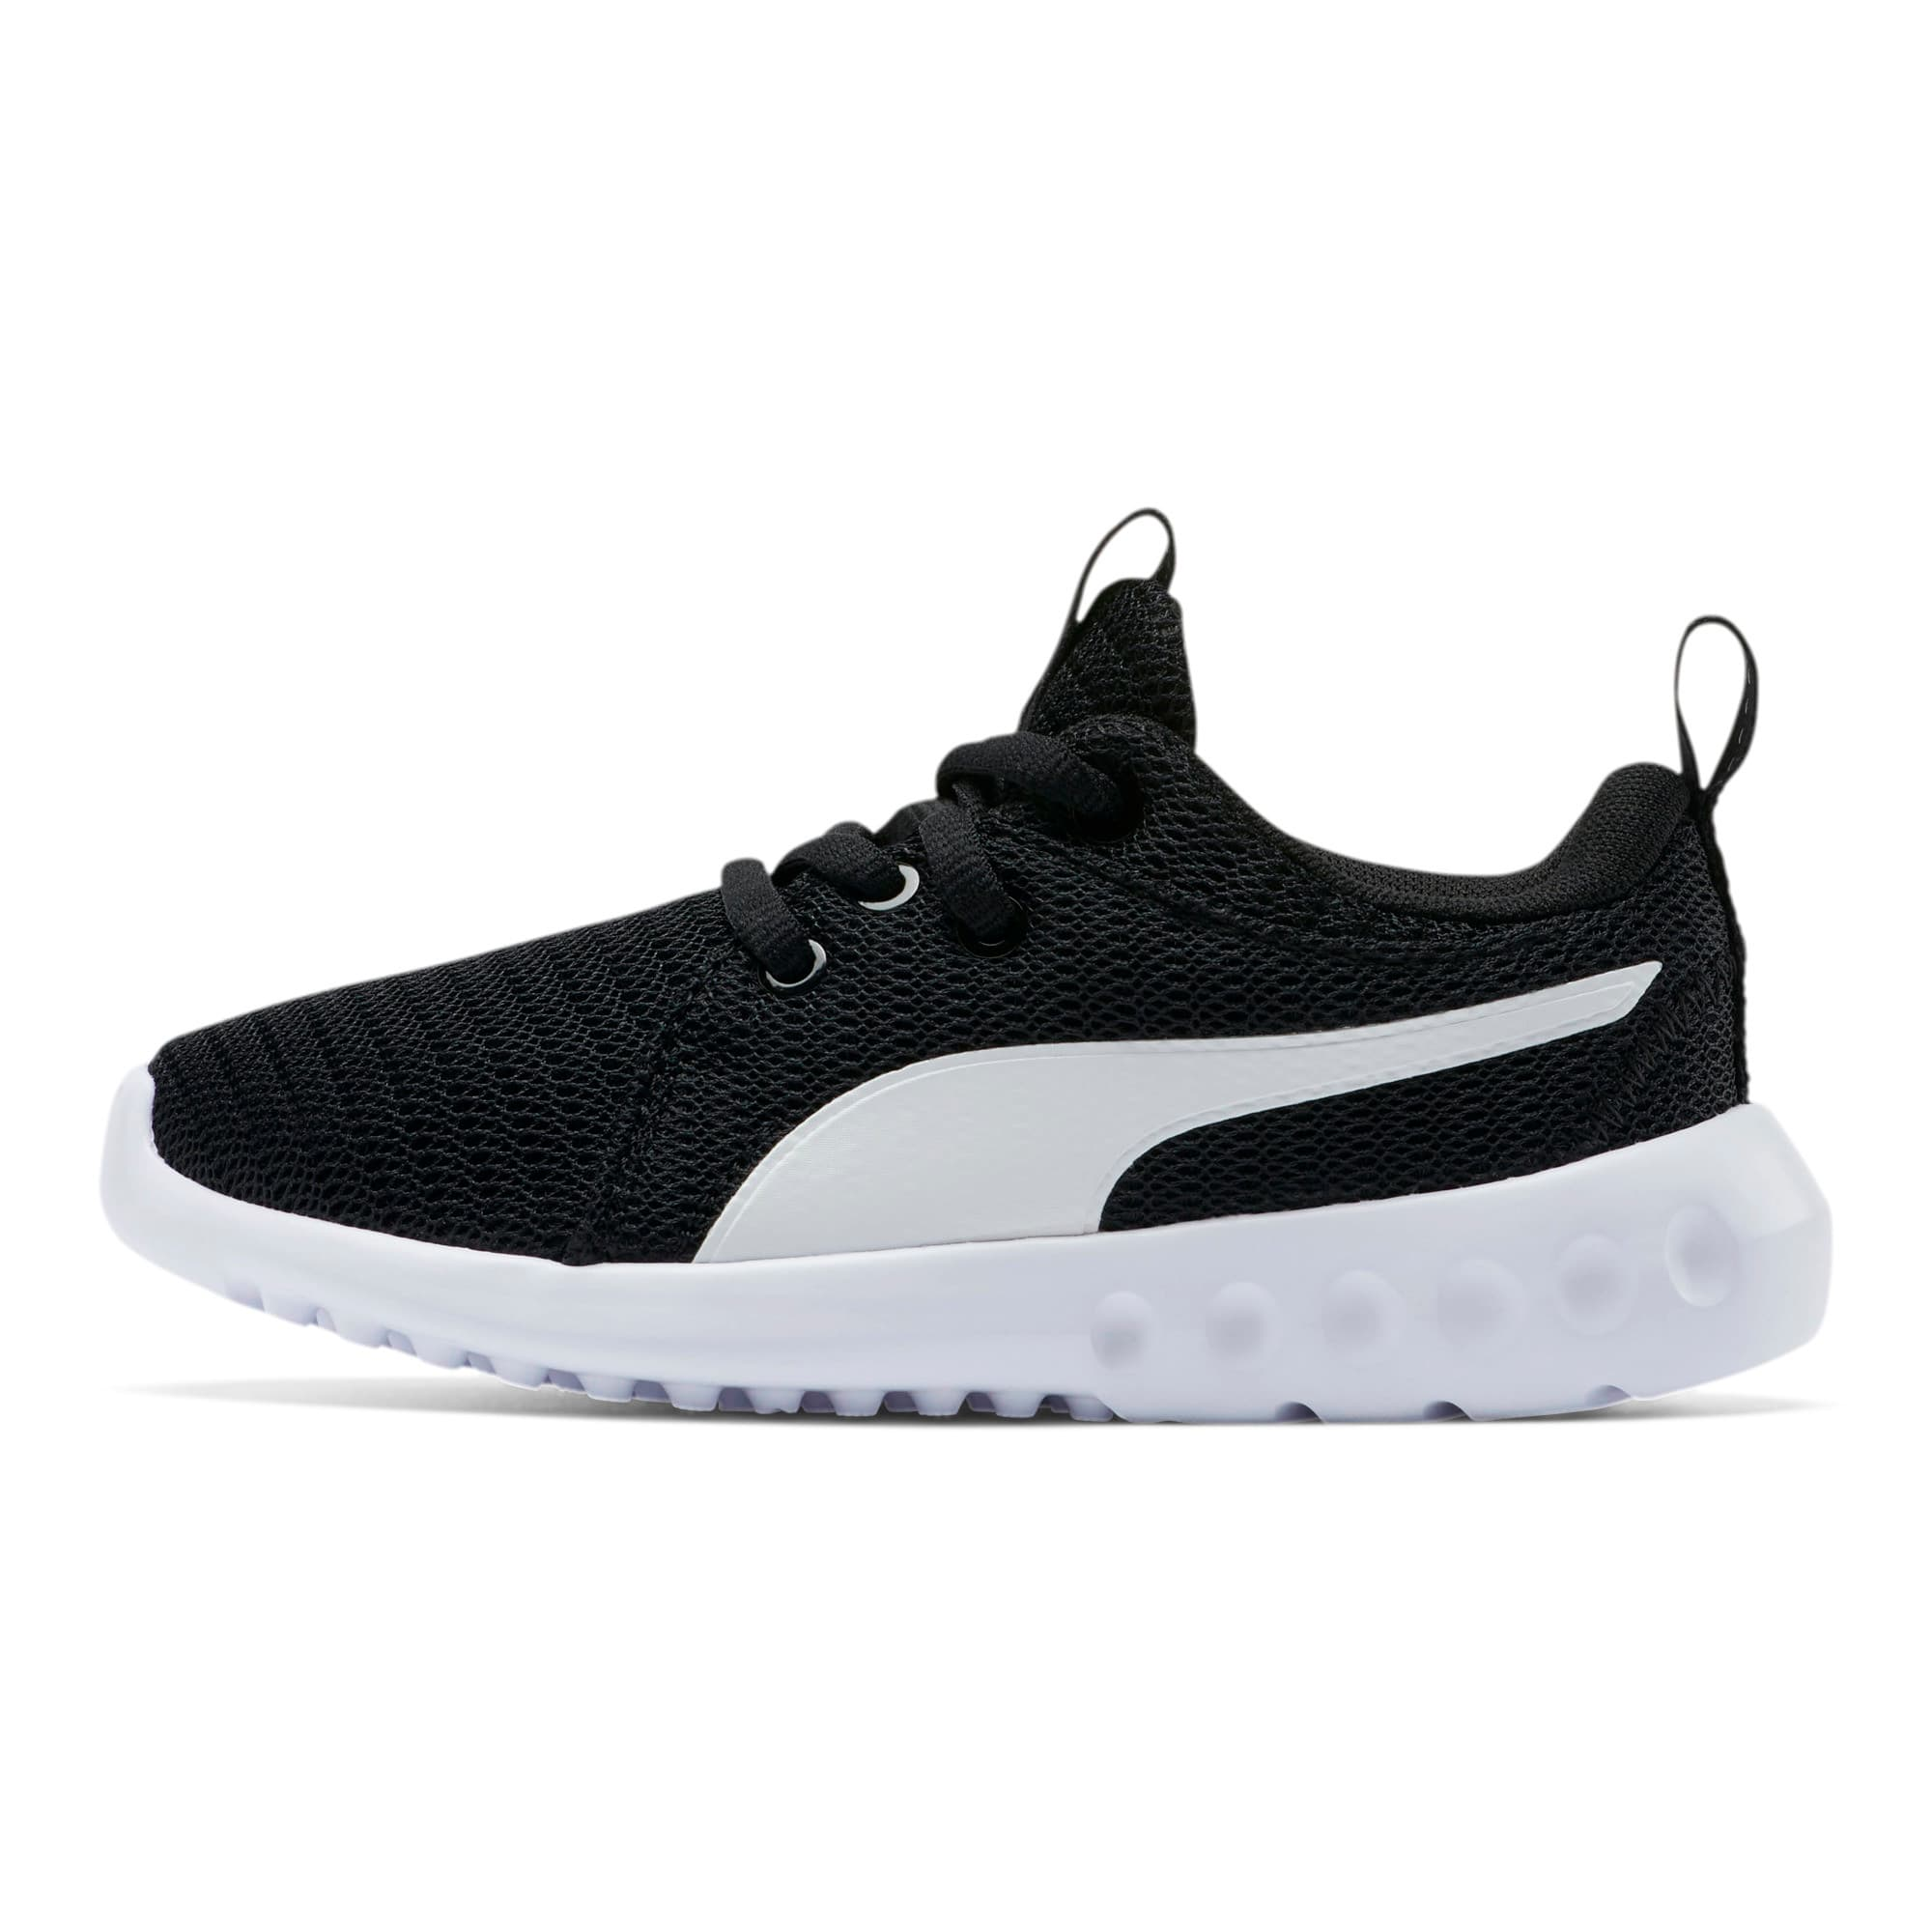 Thumbnail 1 of Carson 2 AC Little Kids' Shoes, Puma Black-Puma White, medium